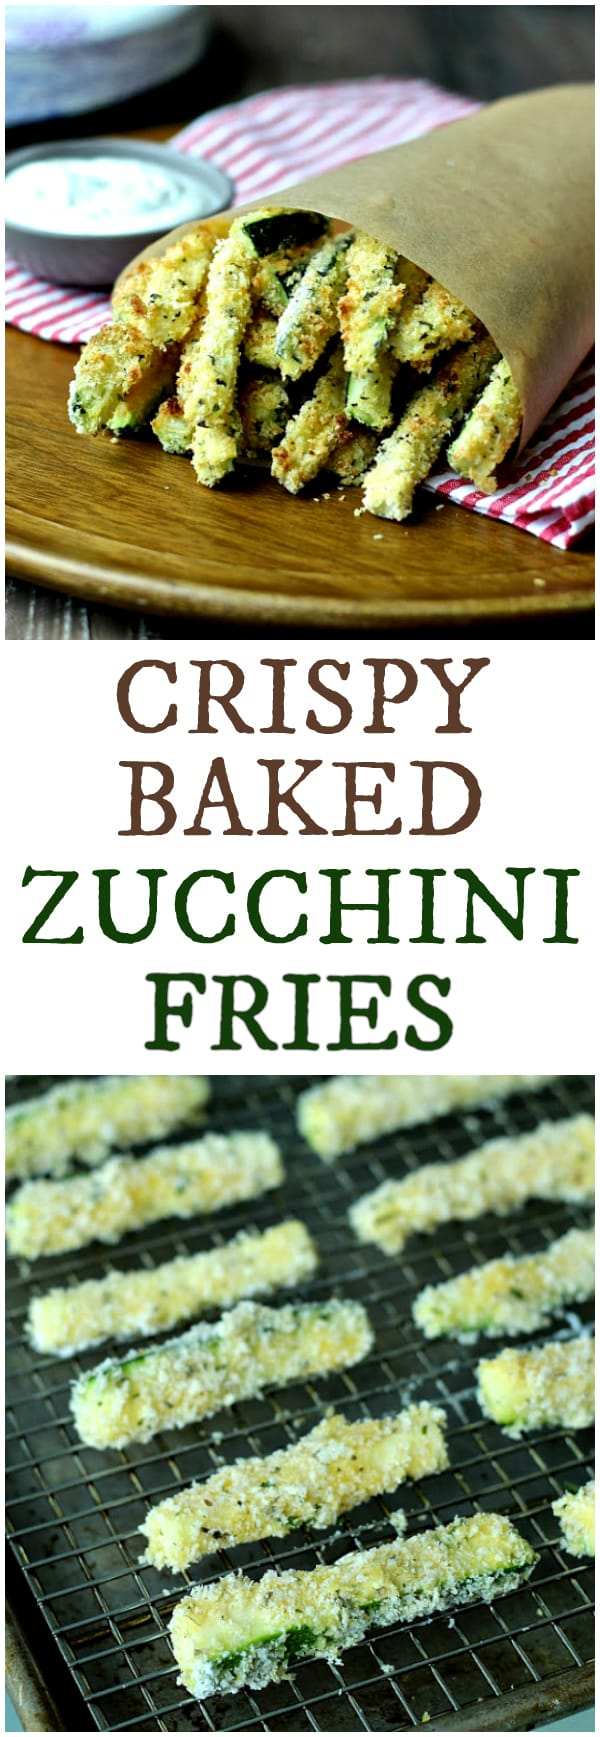 Crispy Baked Zucchini Fries | @foodiephysician